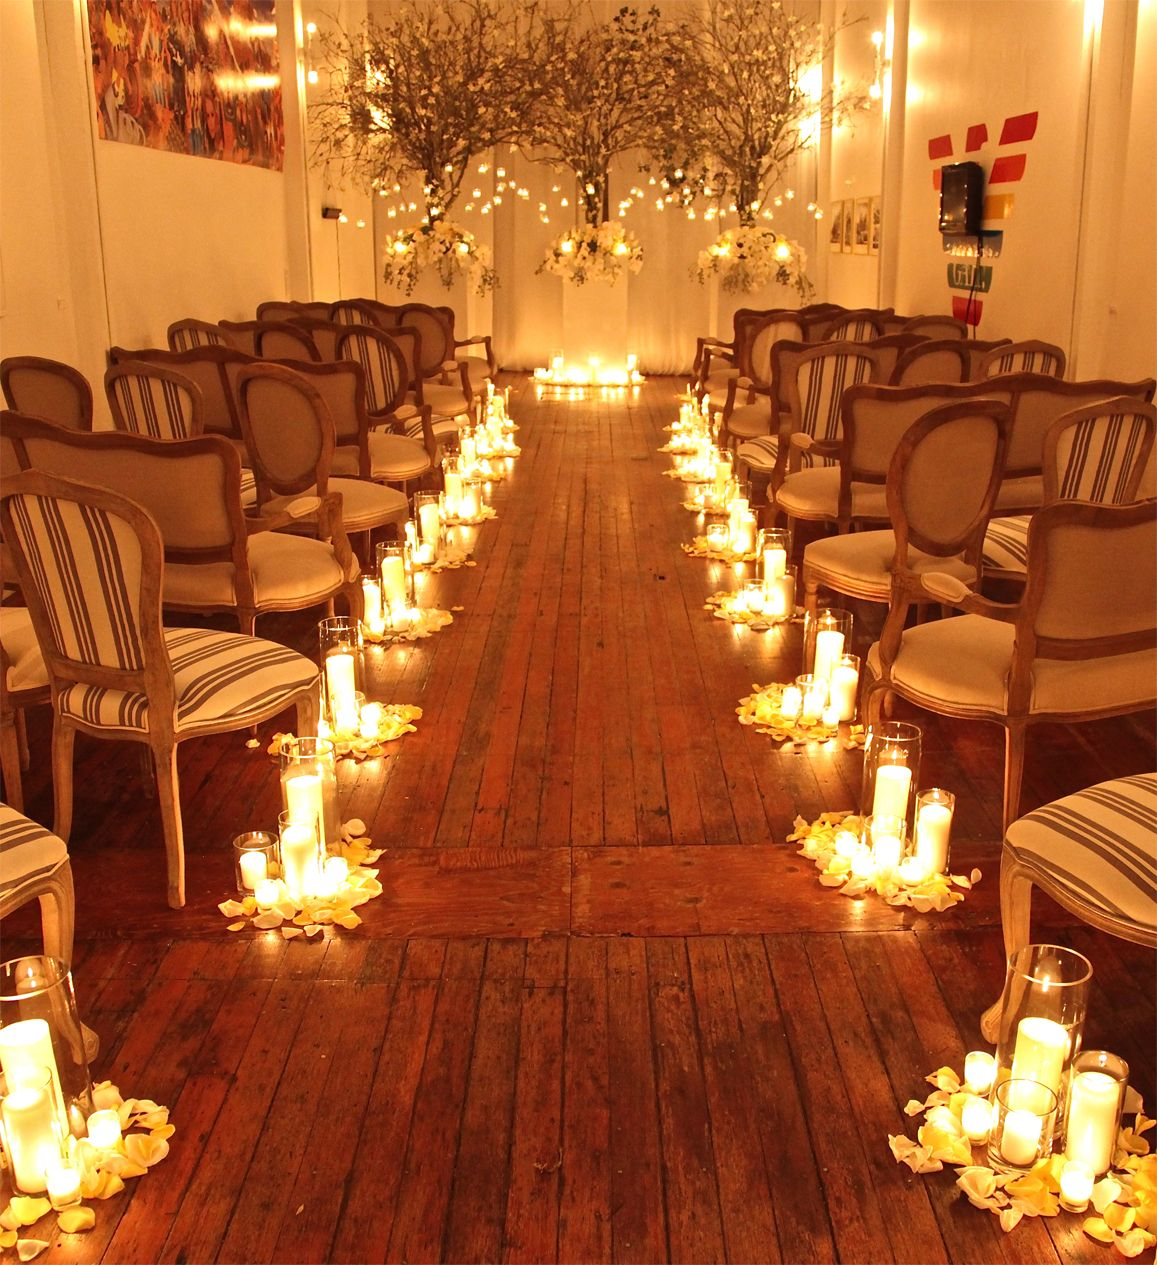 Take #2 Of The Indoor Forest With Fairy Light Aisle